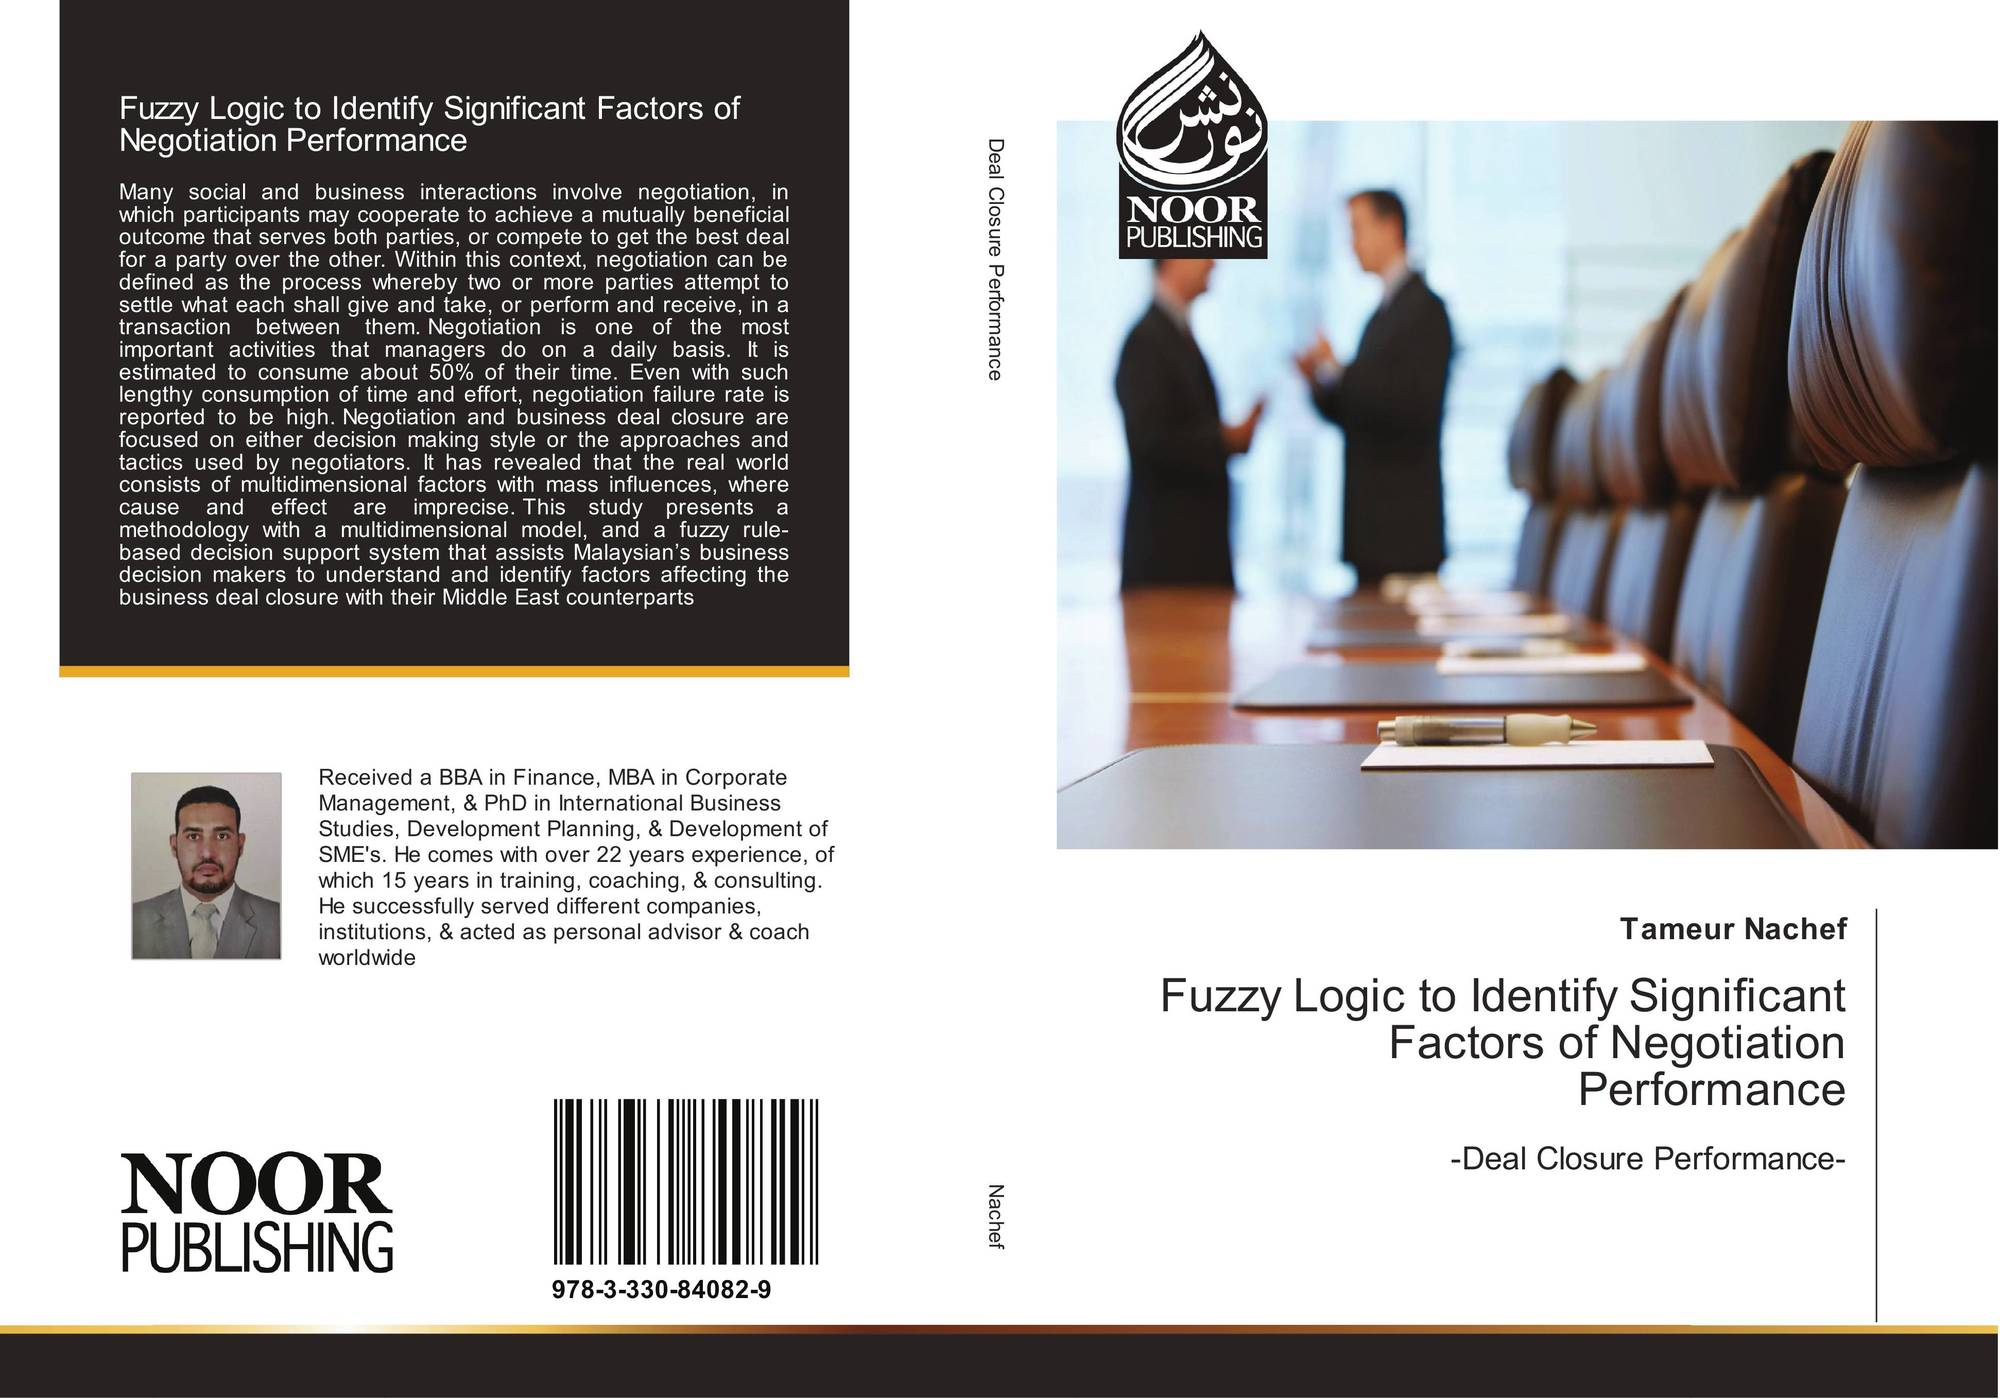 do the institutional factors significantly impact They do not establish laws, regulations or rules for any financial institution directly they merely act in an advisory capacity virtually every systemically important financial institution operates at the top level as a holding company made up of numerous subsidiaries.